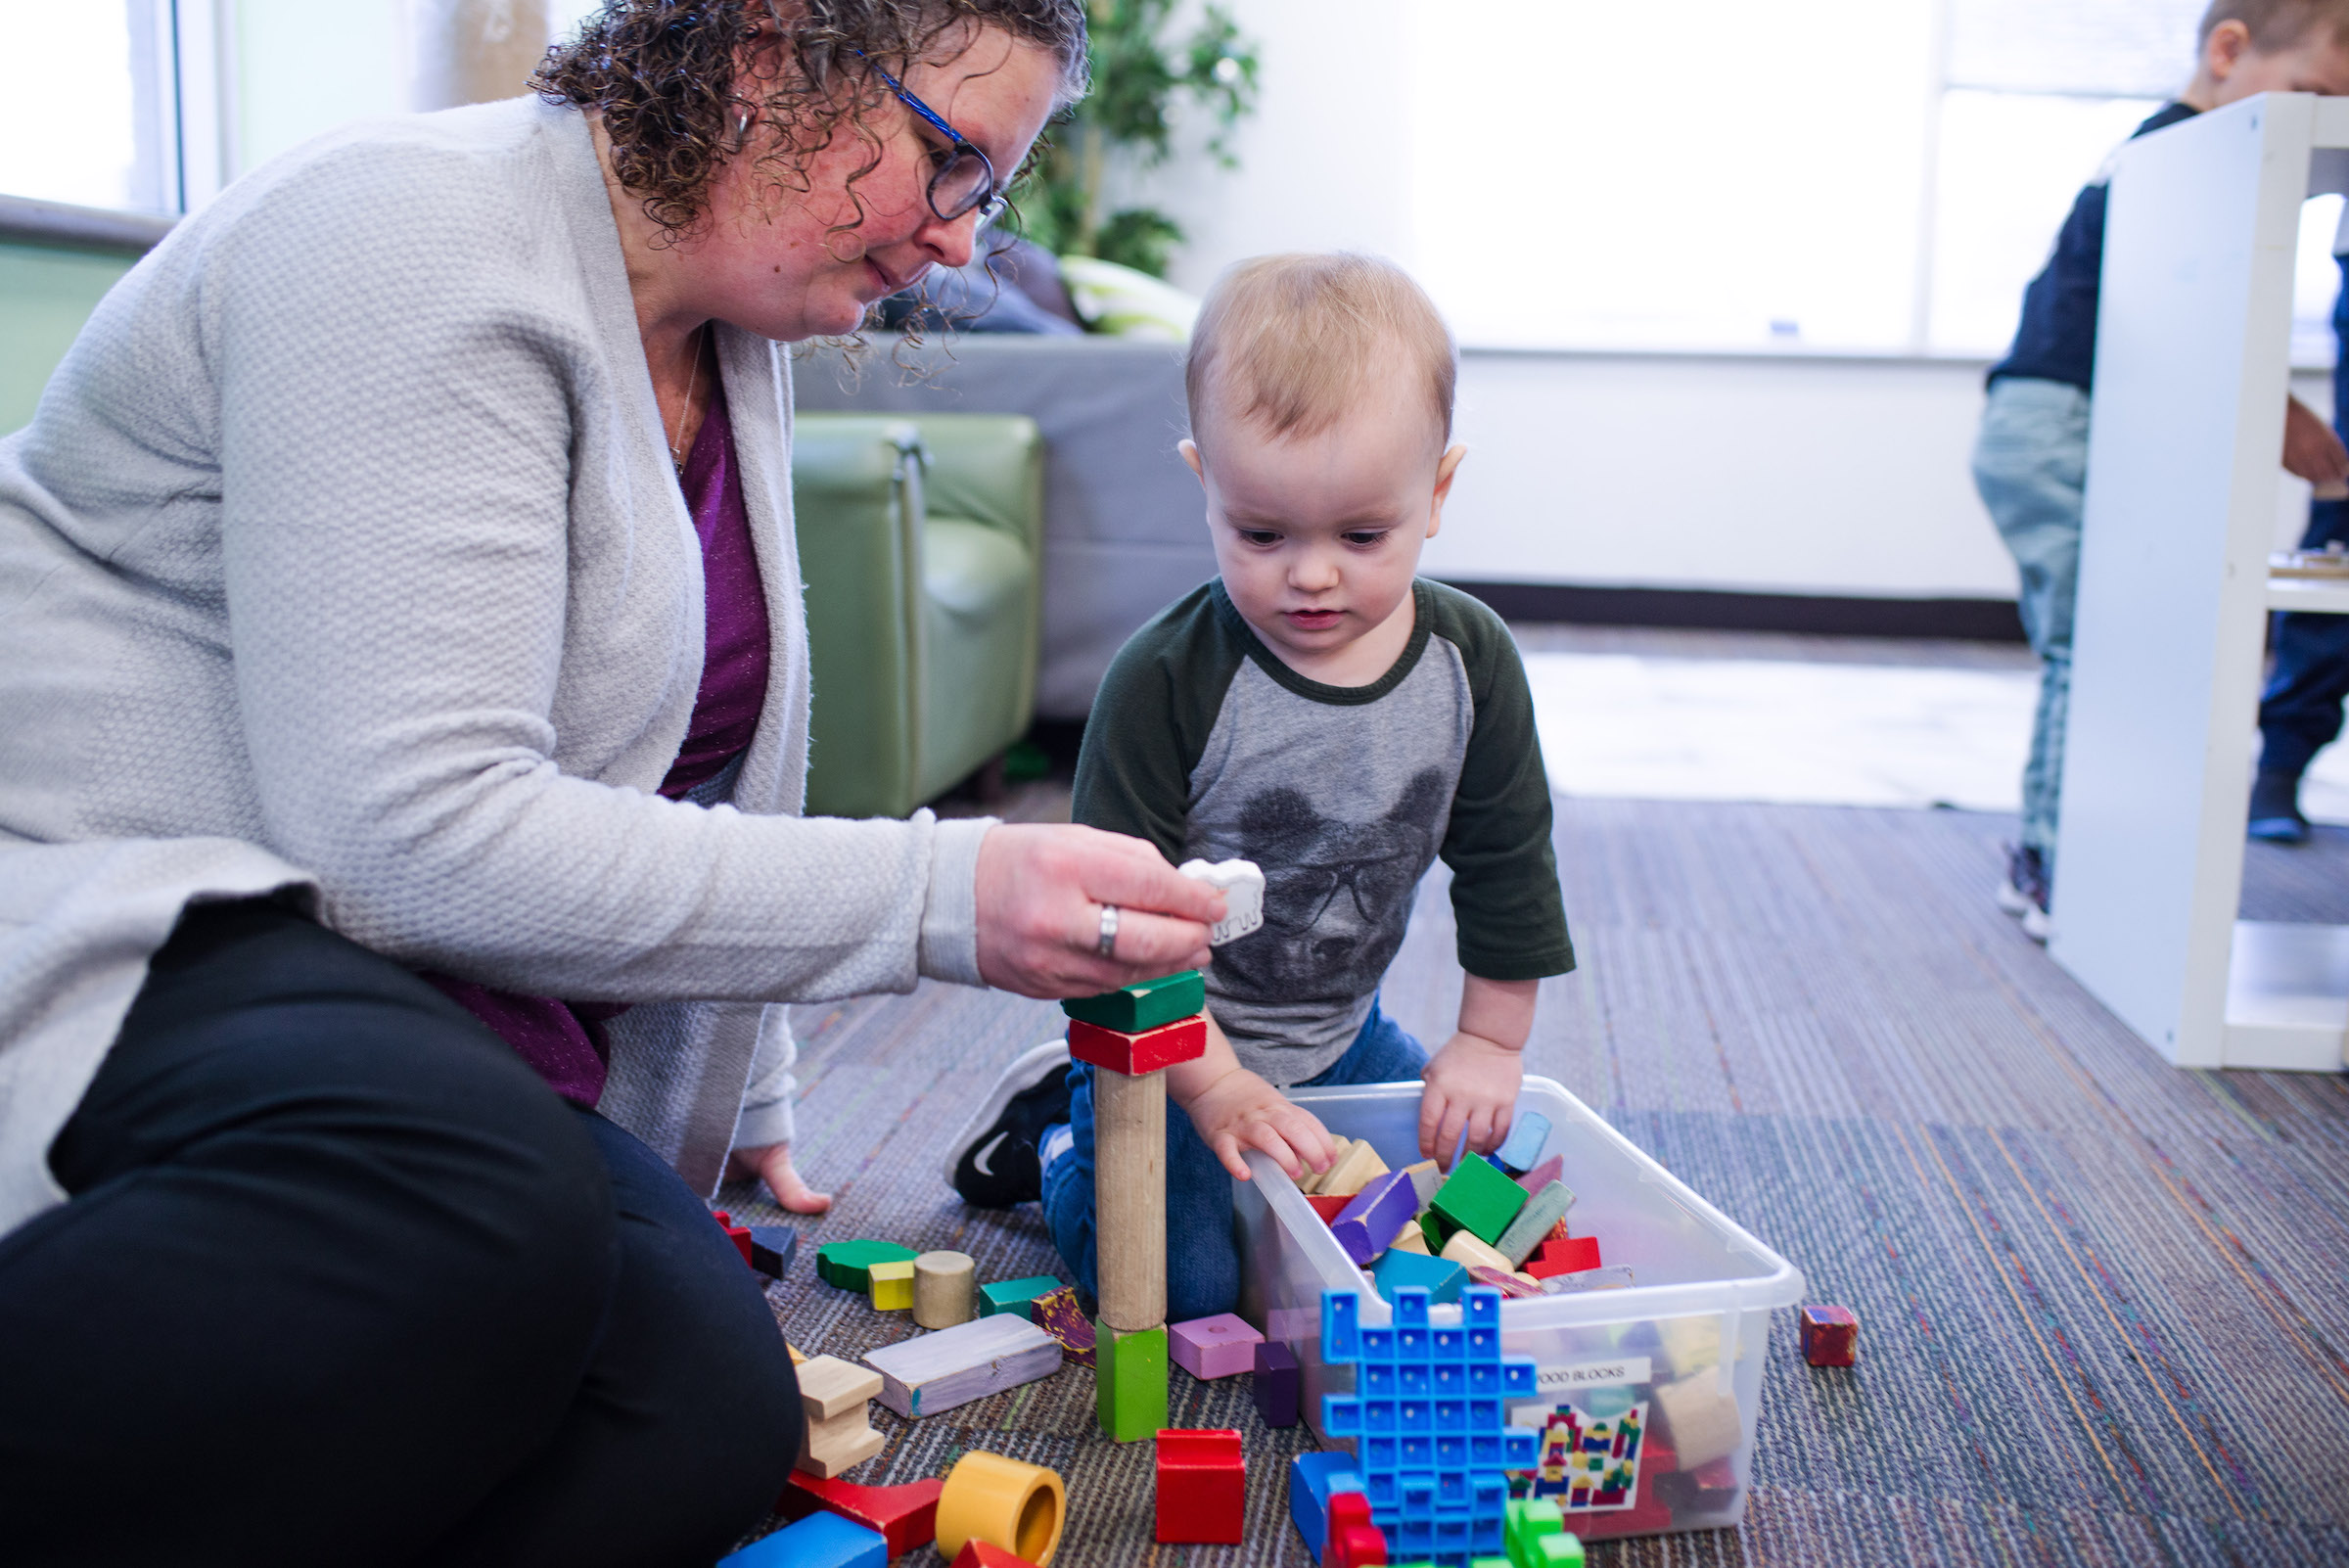 Educator guides baby's learning with bricks